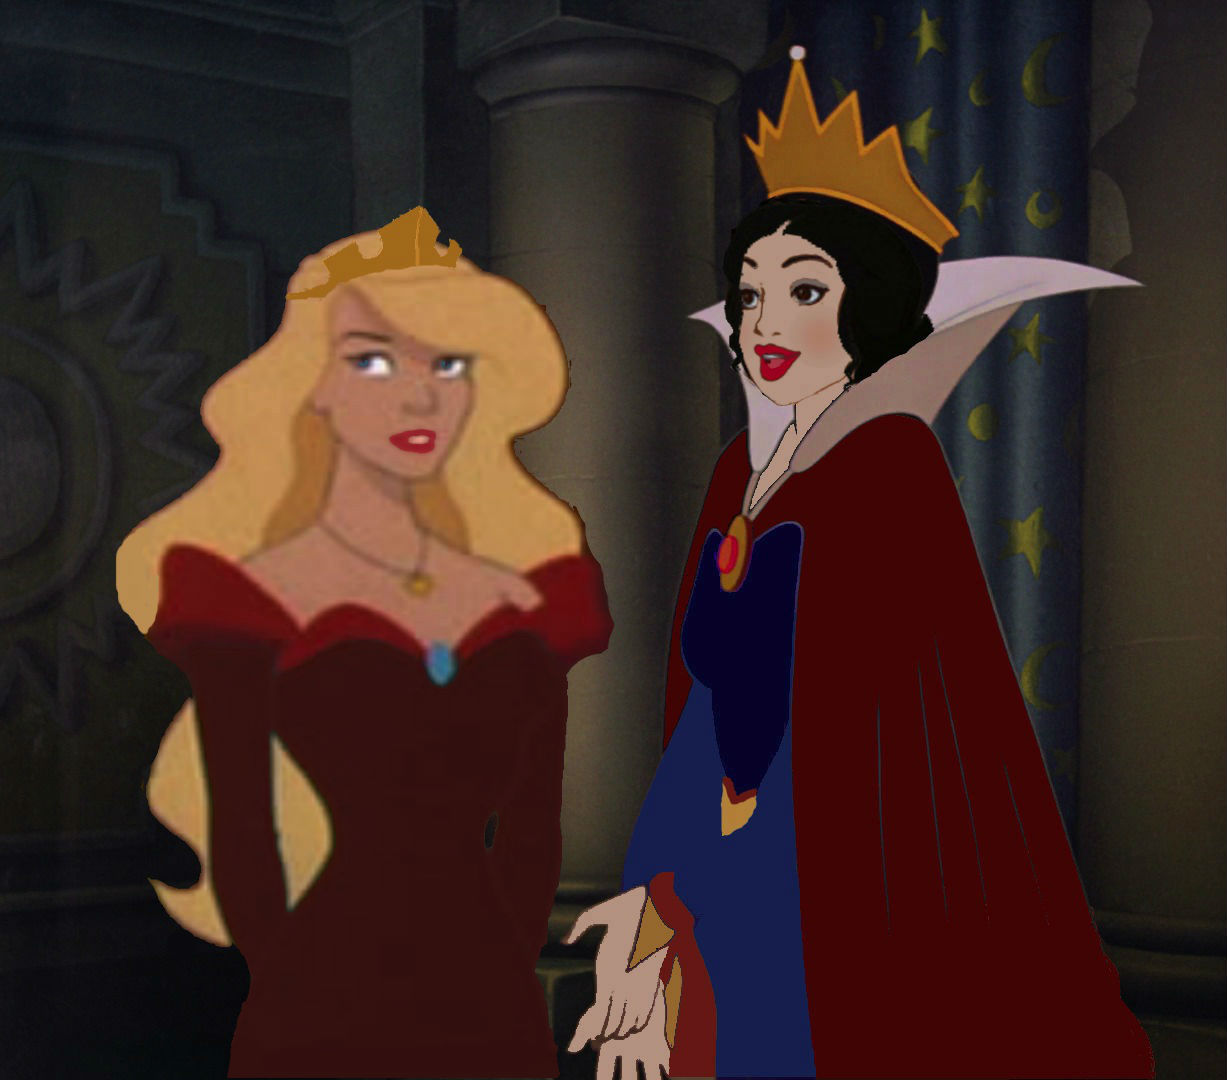 क्वीन Snow White and her daughter, Emma